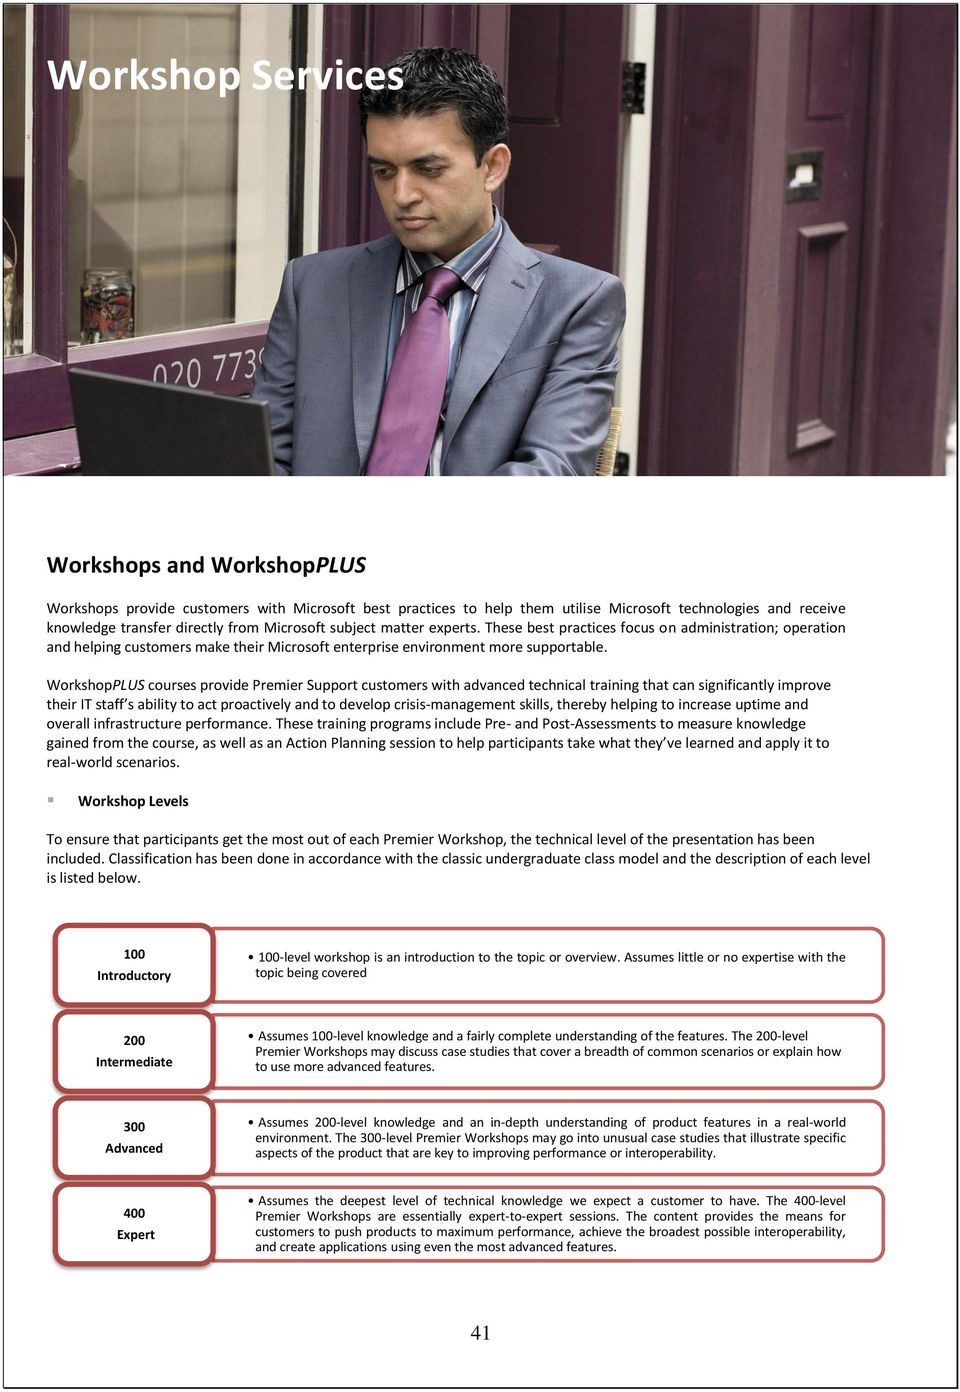 WorkshopPLUS courses provide Premier Support customers with advanced technical training that can significantly improve their IT staff s ability to act proactively and to develop crisis-management